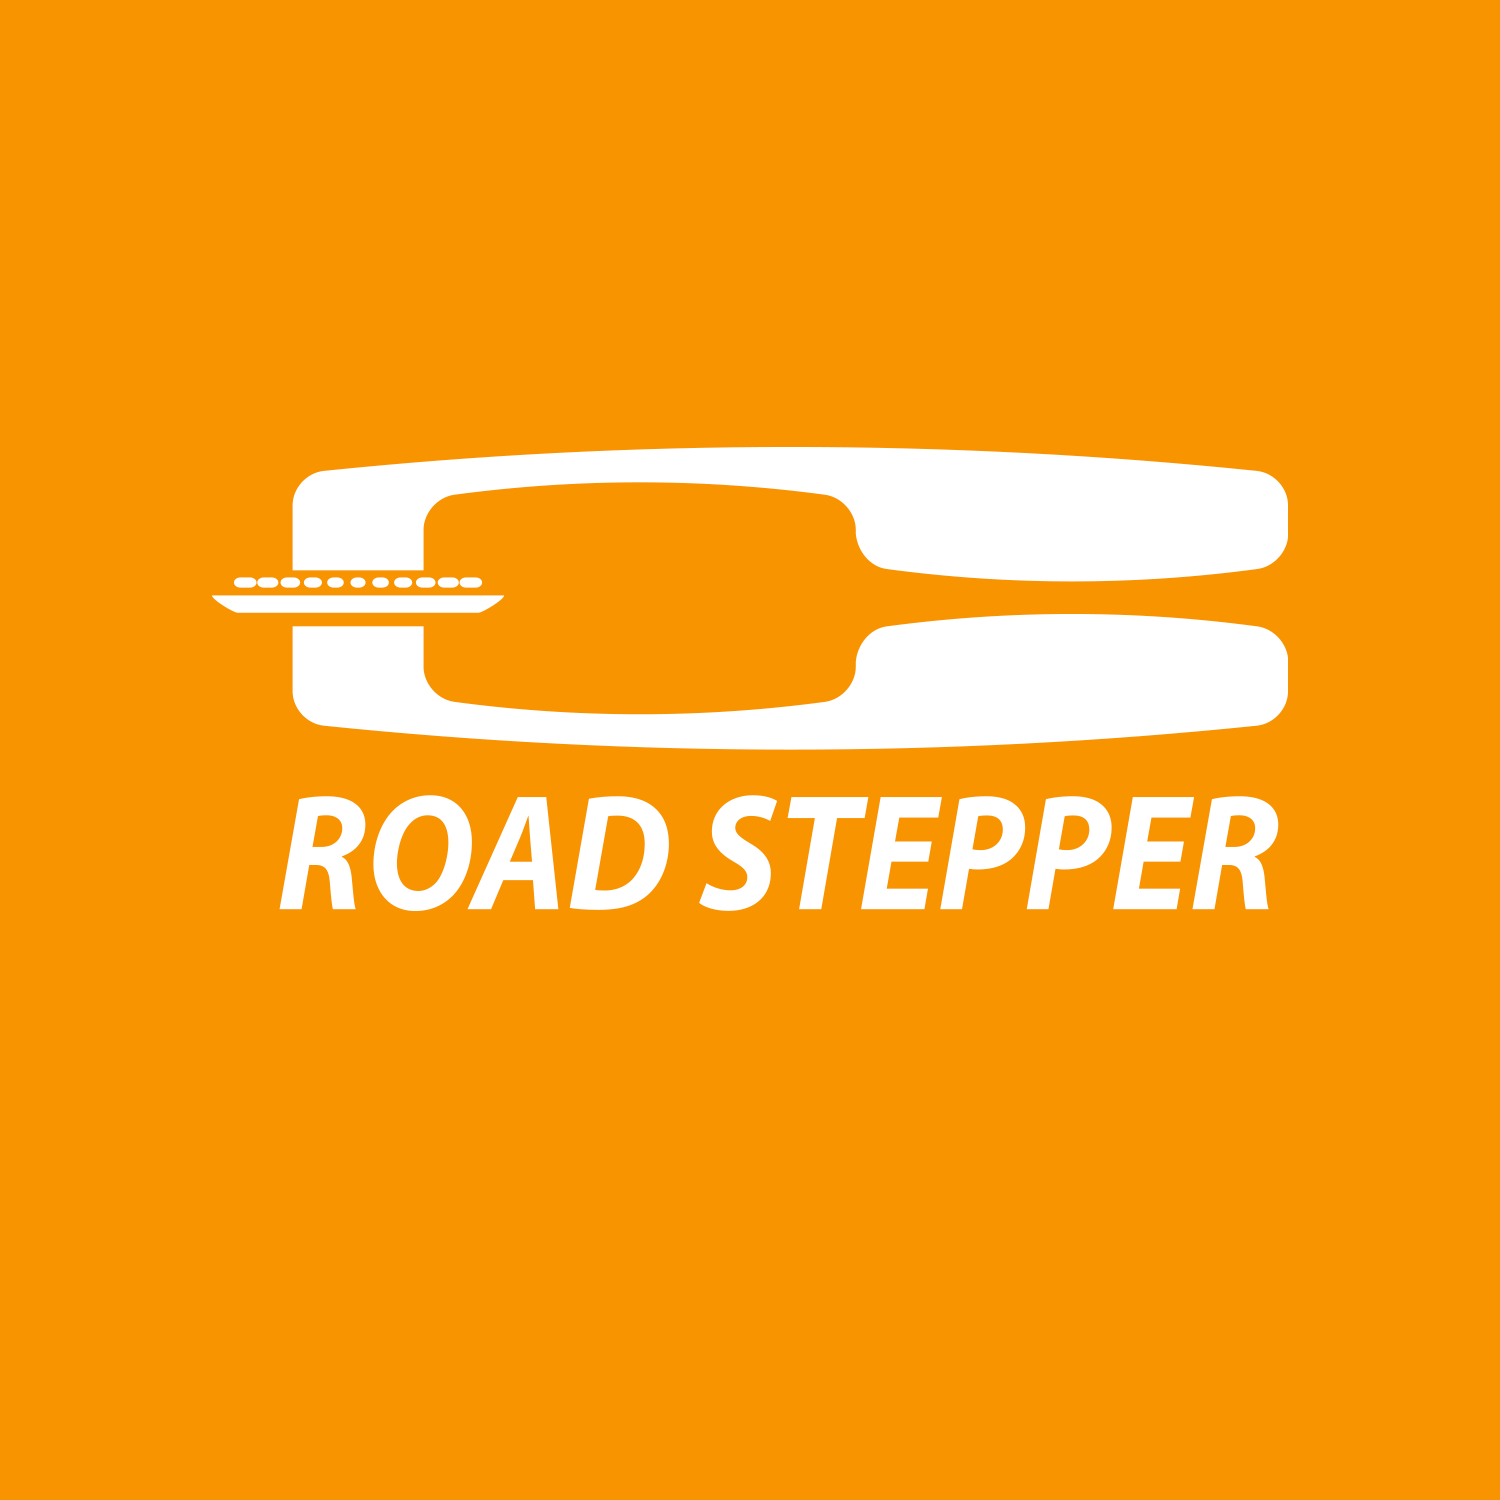 Road Stepper